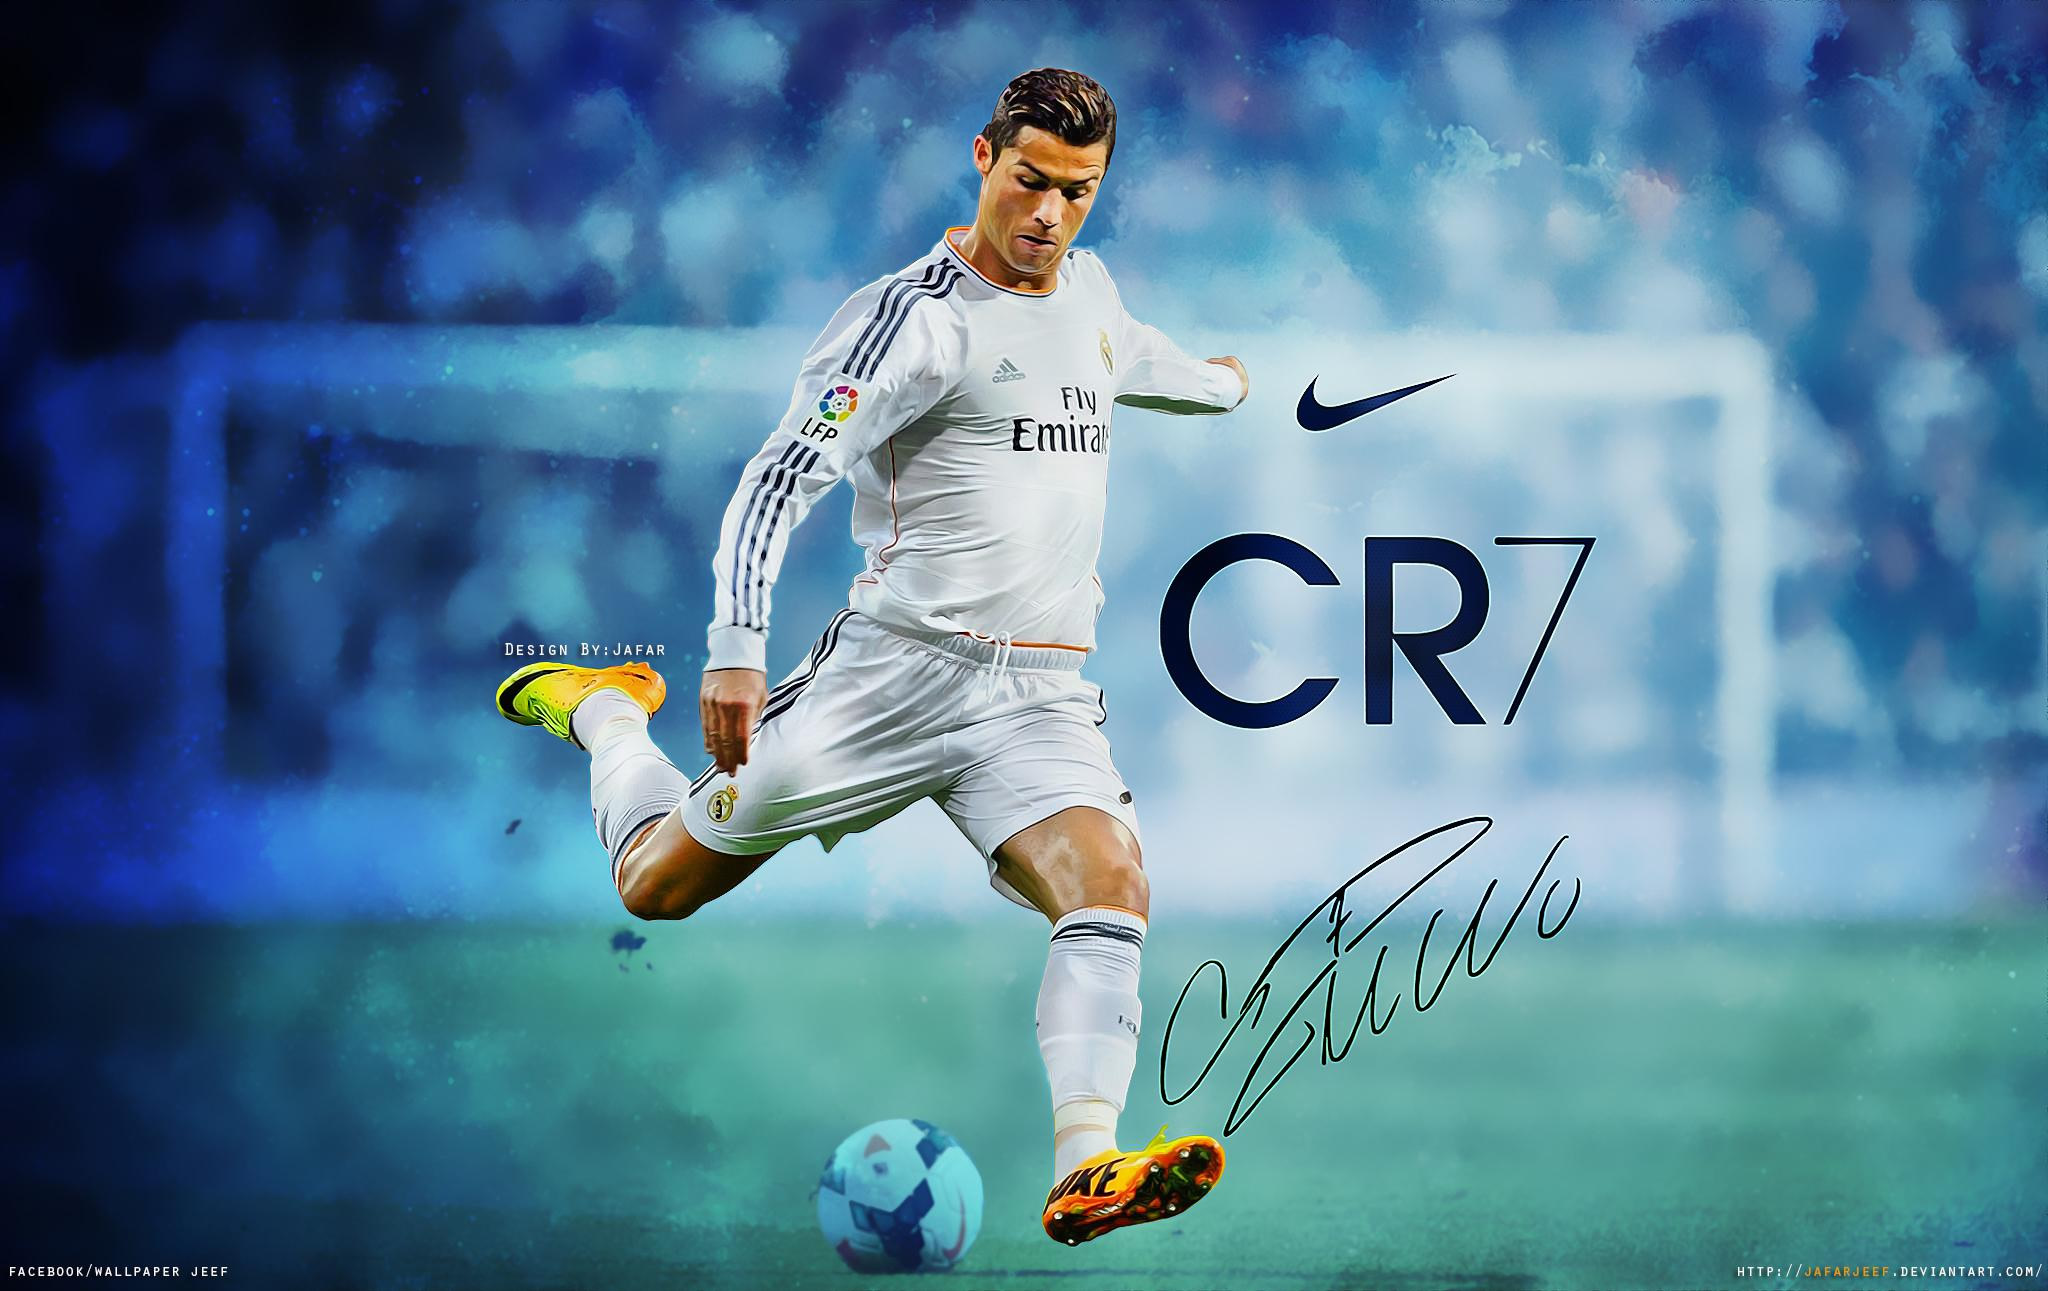 Cristiano Ronaldo Wallpaper By Jafarjeef